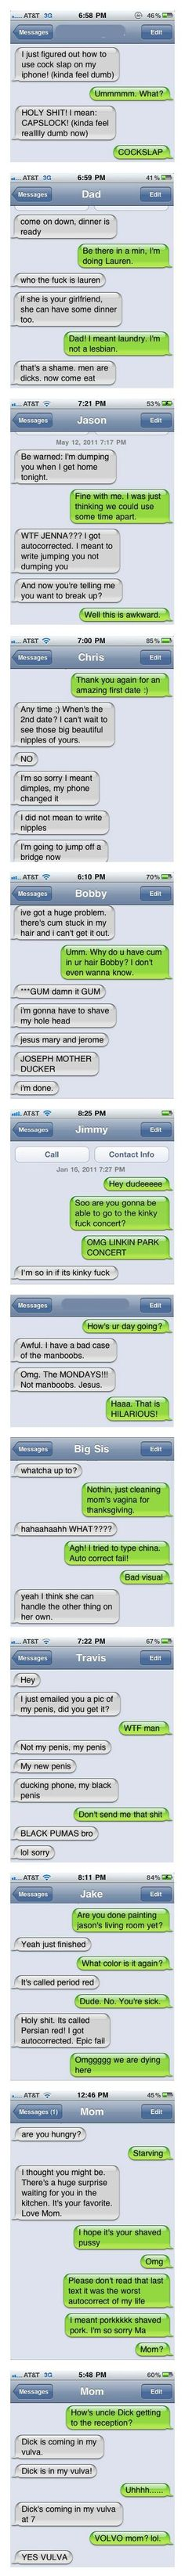 Funniest Auto-Corrects Of 2011 Haha I cried reading these! More funny things: www.funiest-stuff.com